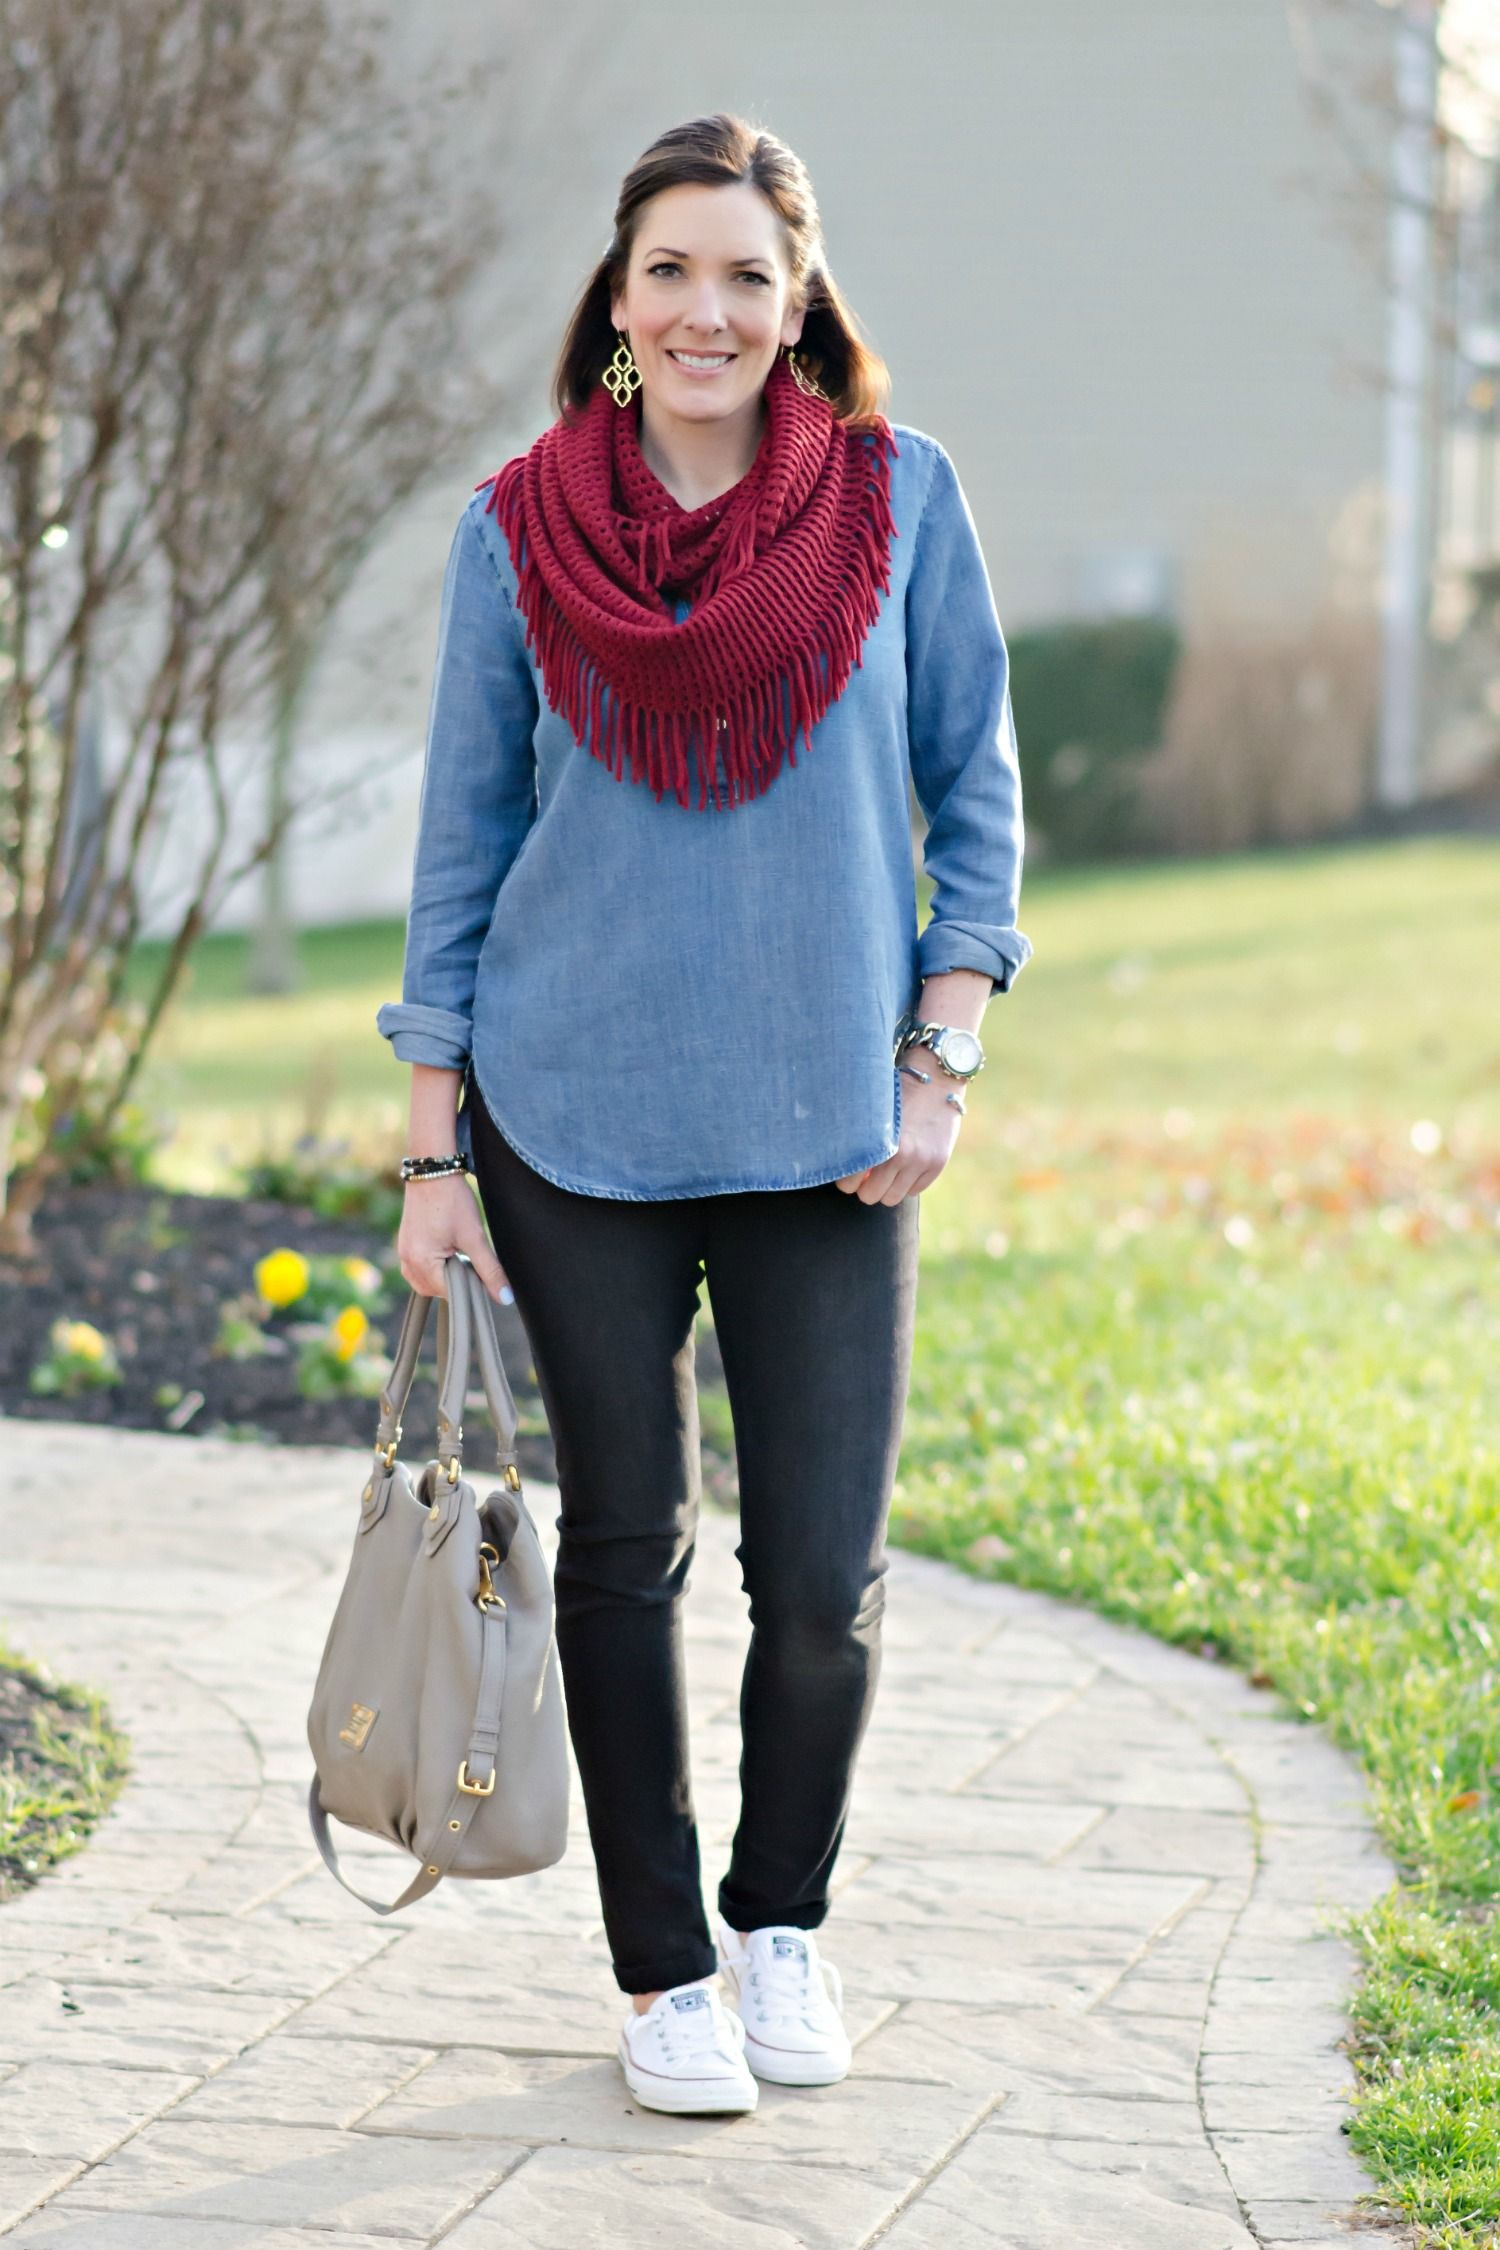 bc7c63b0945a5f Chambray Tunic with Black Jeans